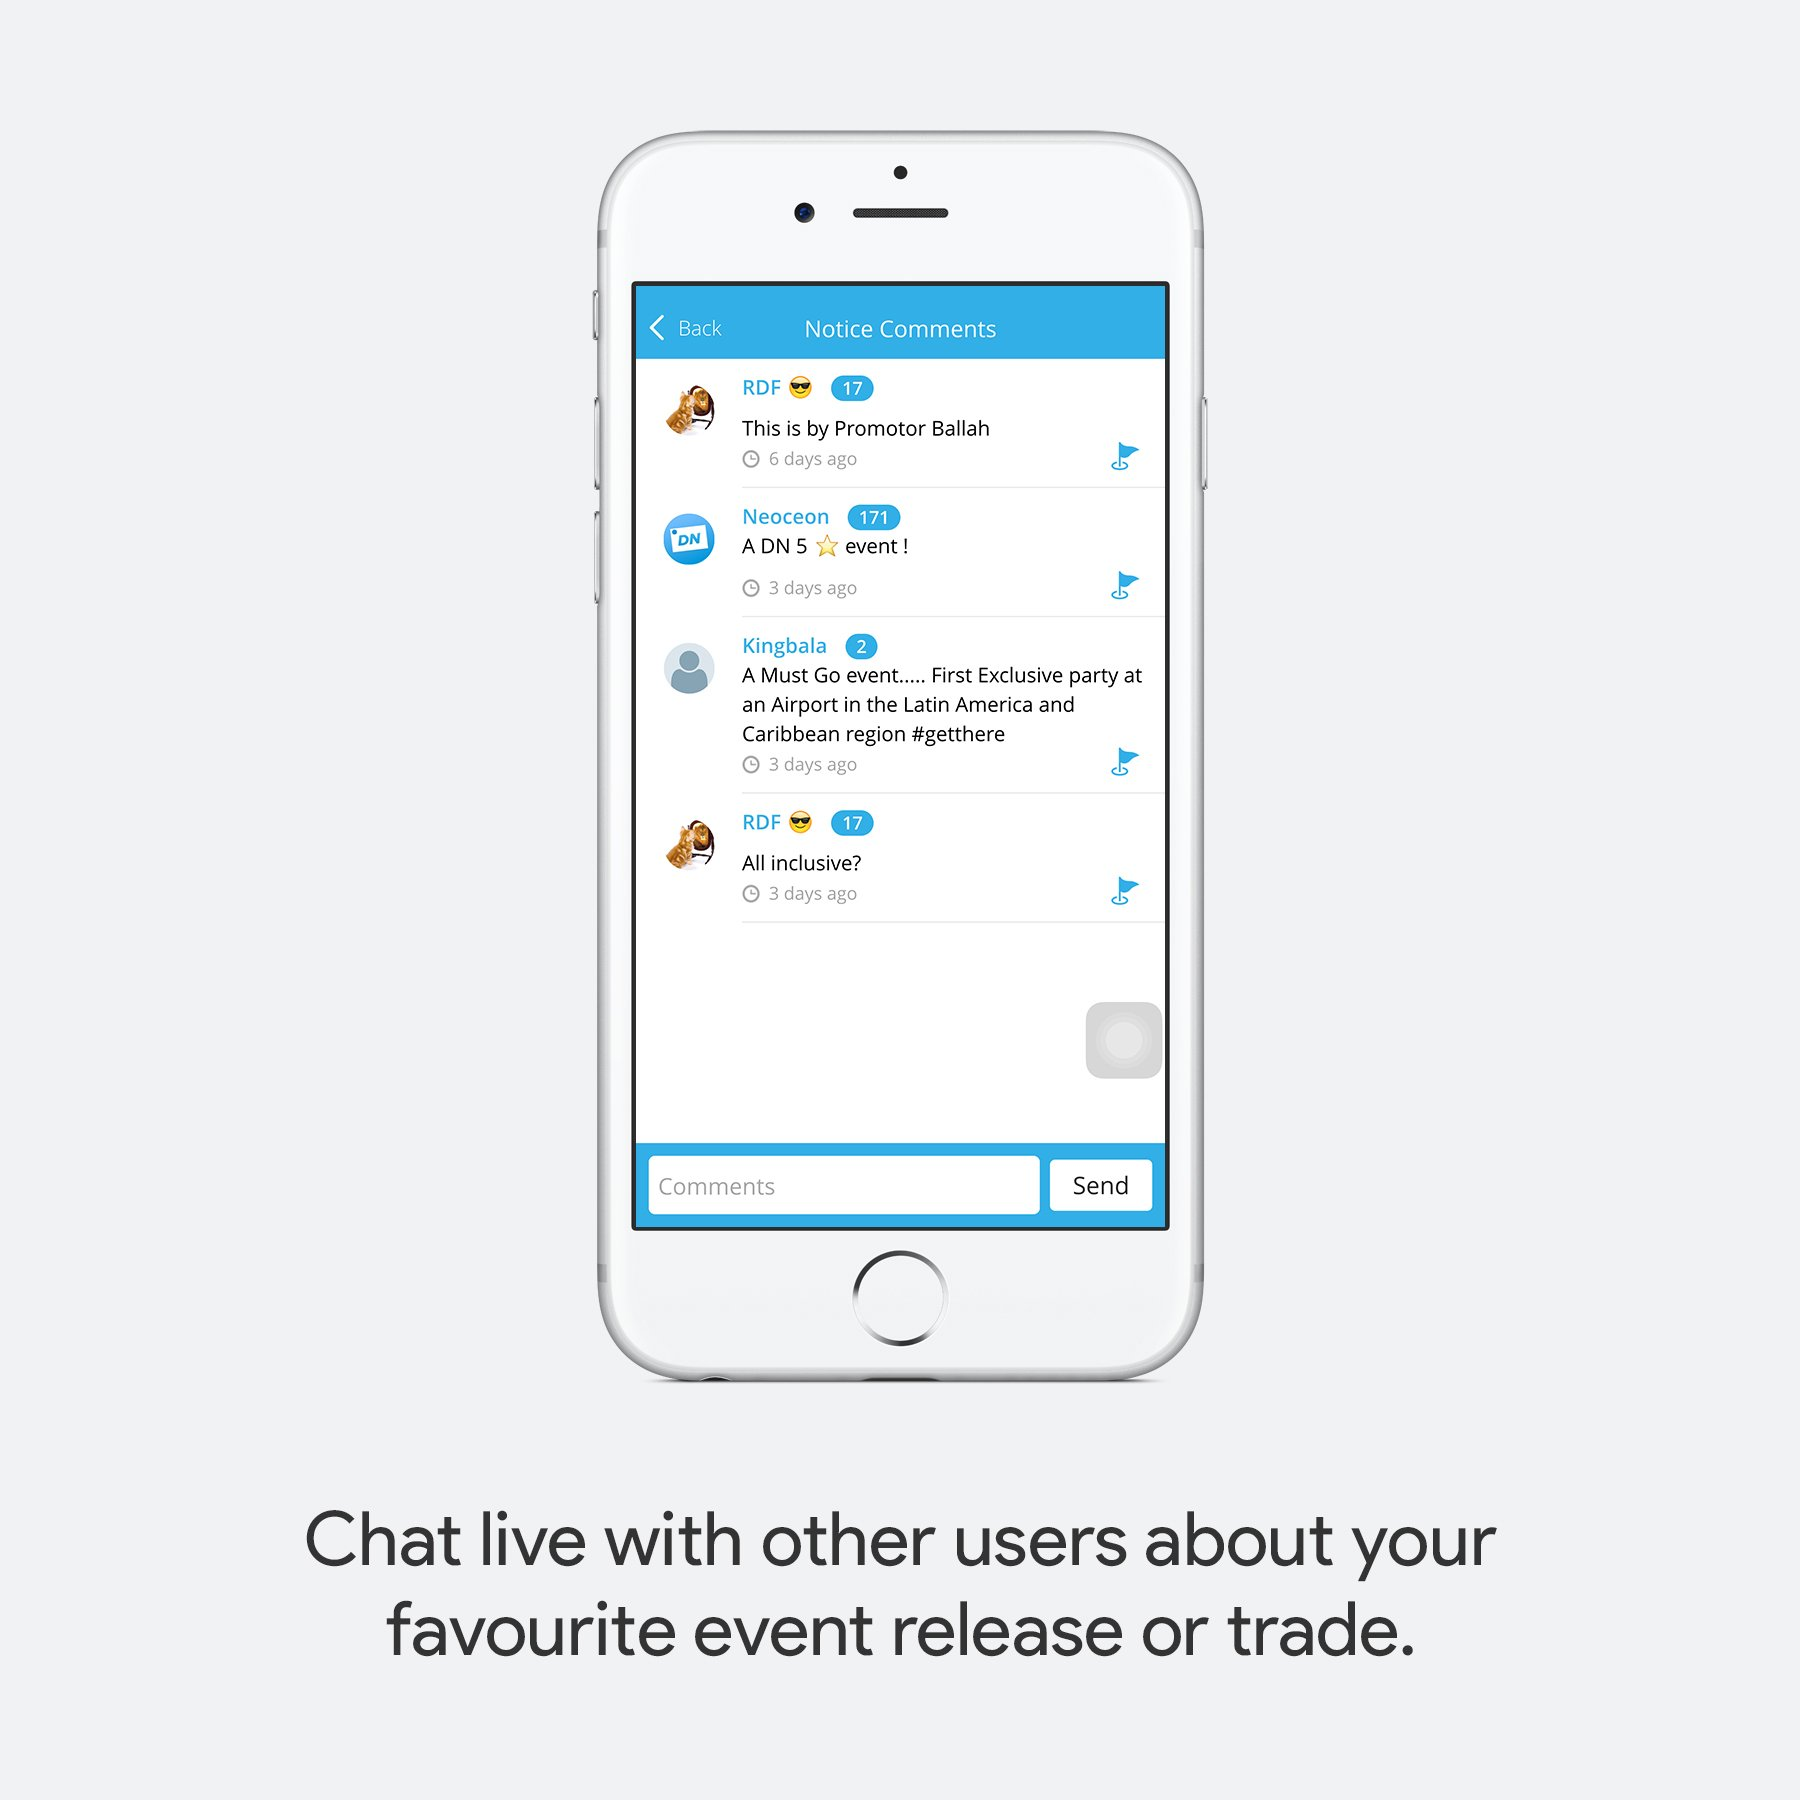 Chat live with other users about your favourite event release or trade.